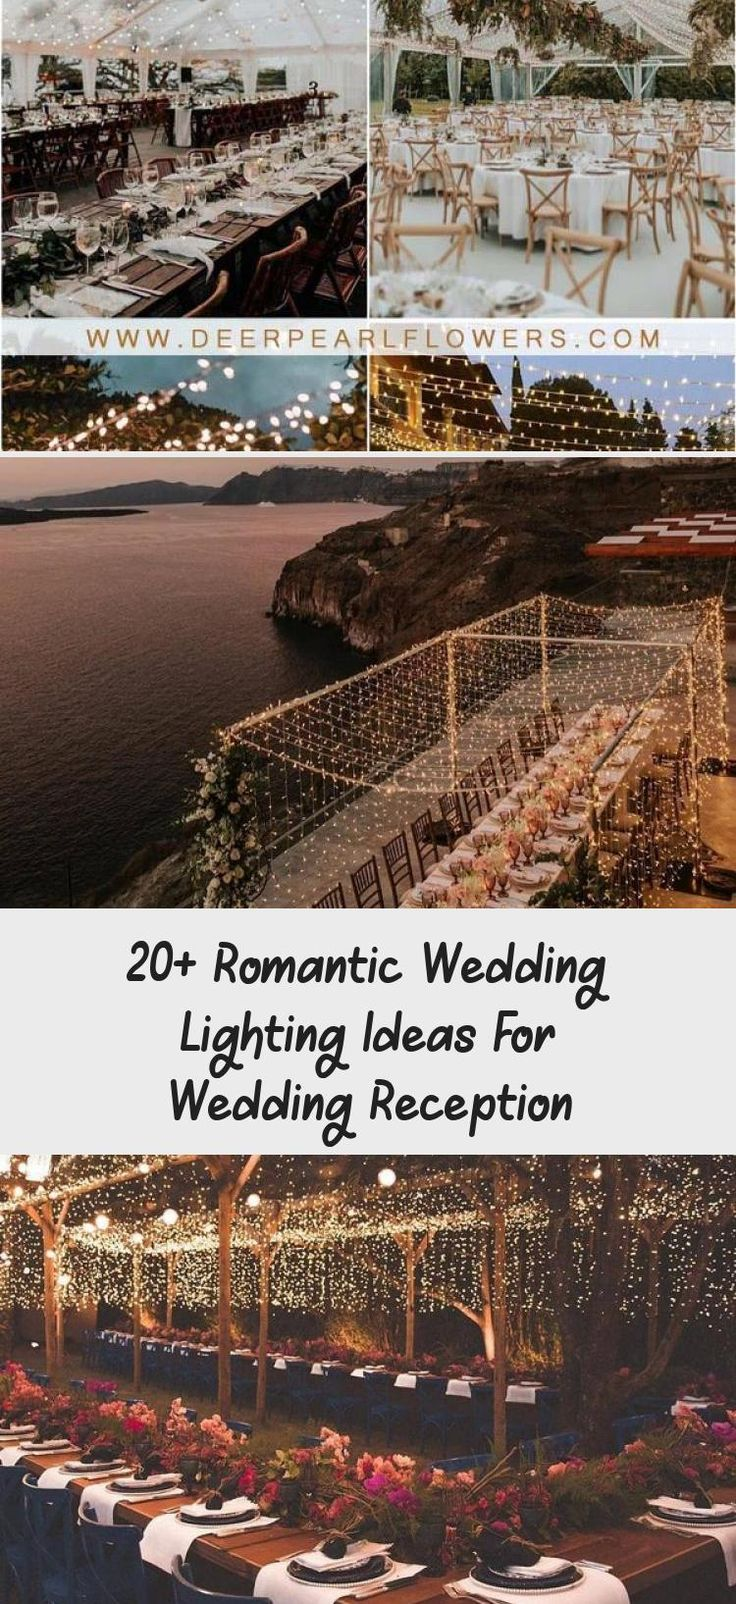 rustic lighting wedding reception decor #wedding #countryweddings #fallweddings #lighting #weddinginspiration #dpf #gardenweddingDIY #Whimsicalgardenwedding #Secretgardenwedding #Whitegardenwedding #gardenweddingParty